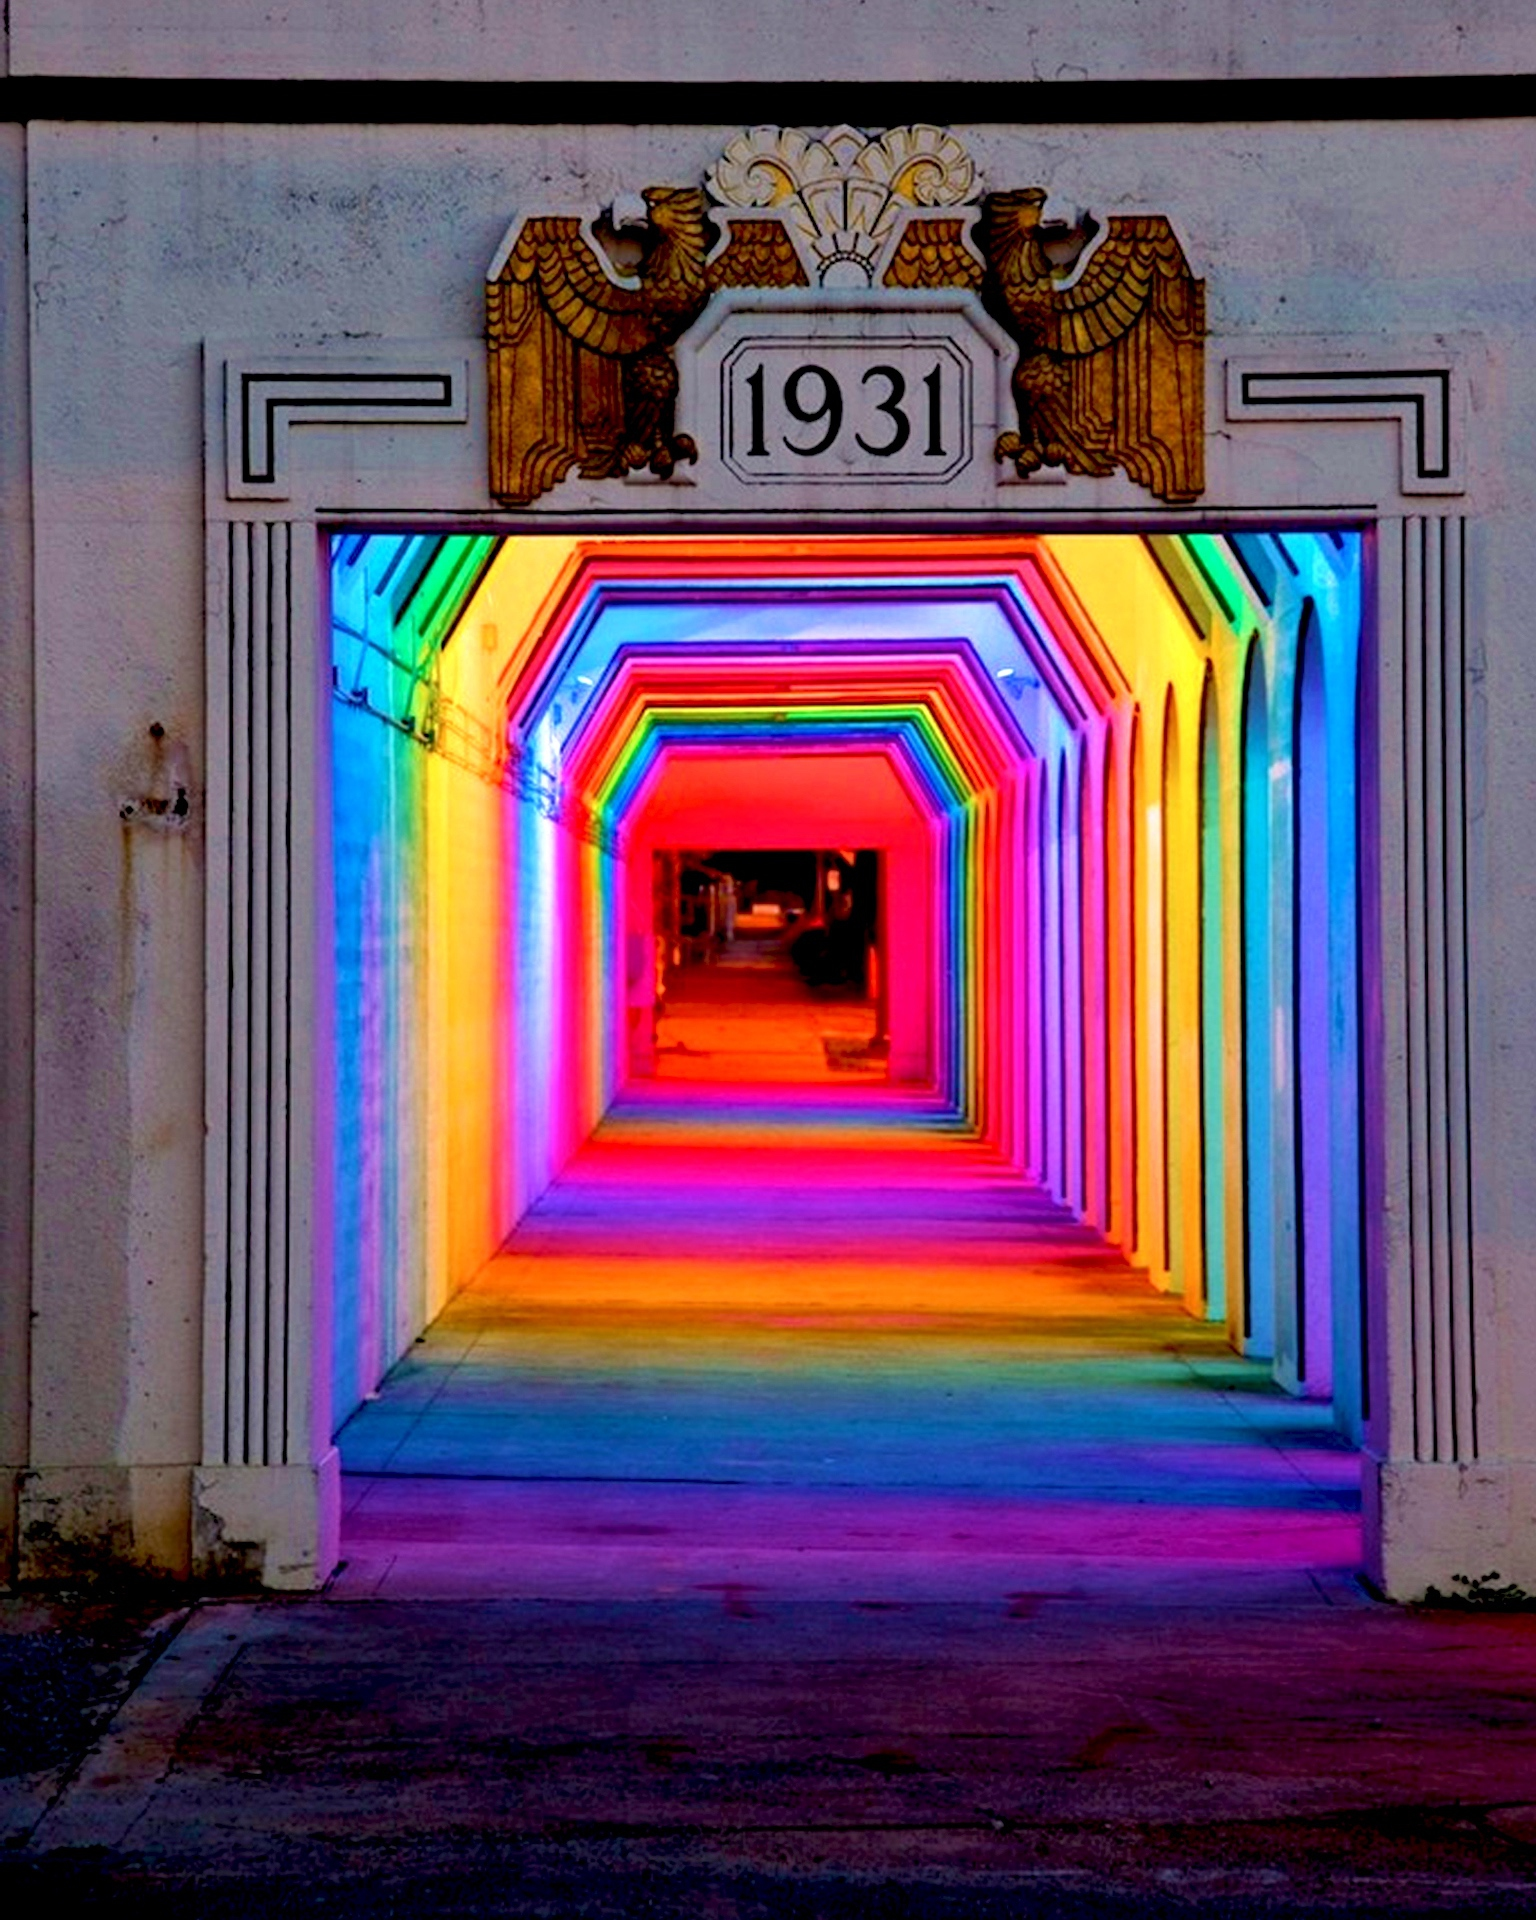 LightRails (2013) by Bill FitzGibbons - Pako Campo